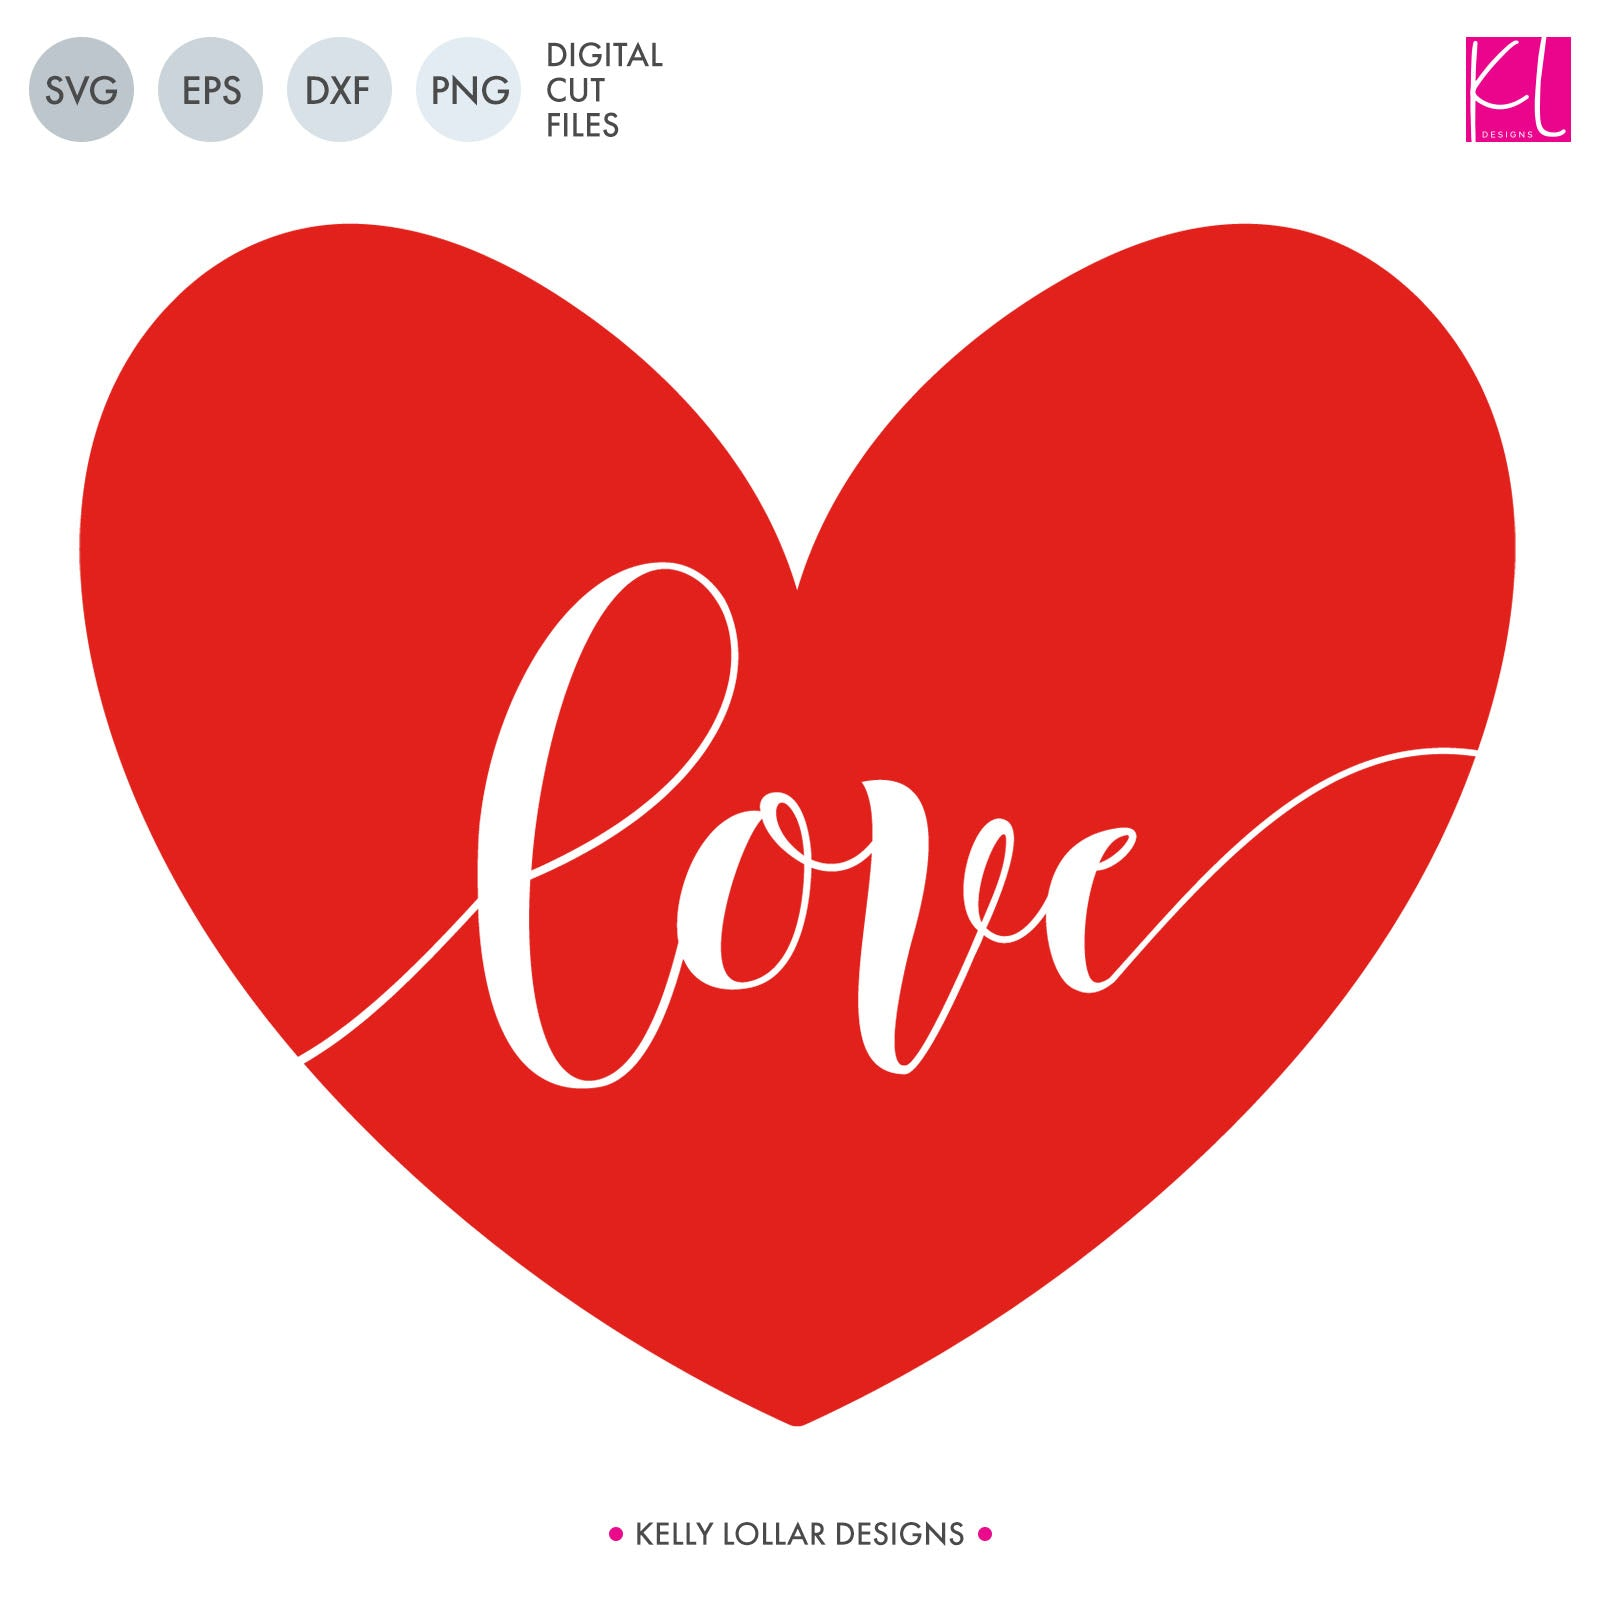 Download Free Love Heart SVG Cut Files - Kelly Lollar Designs